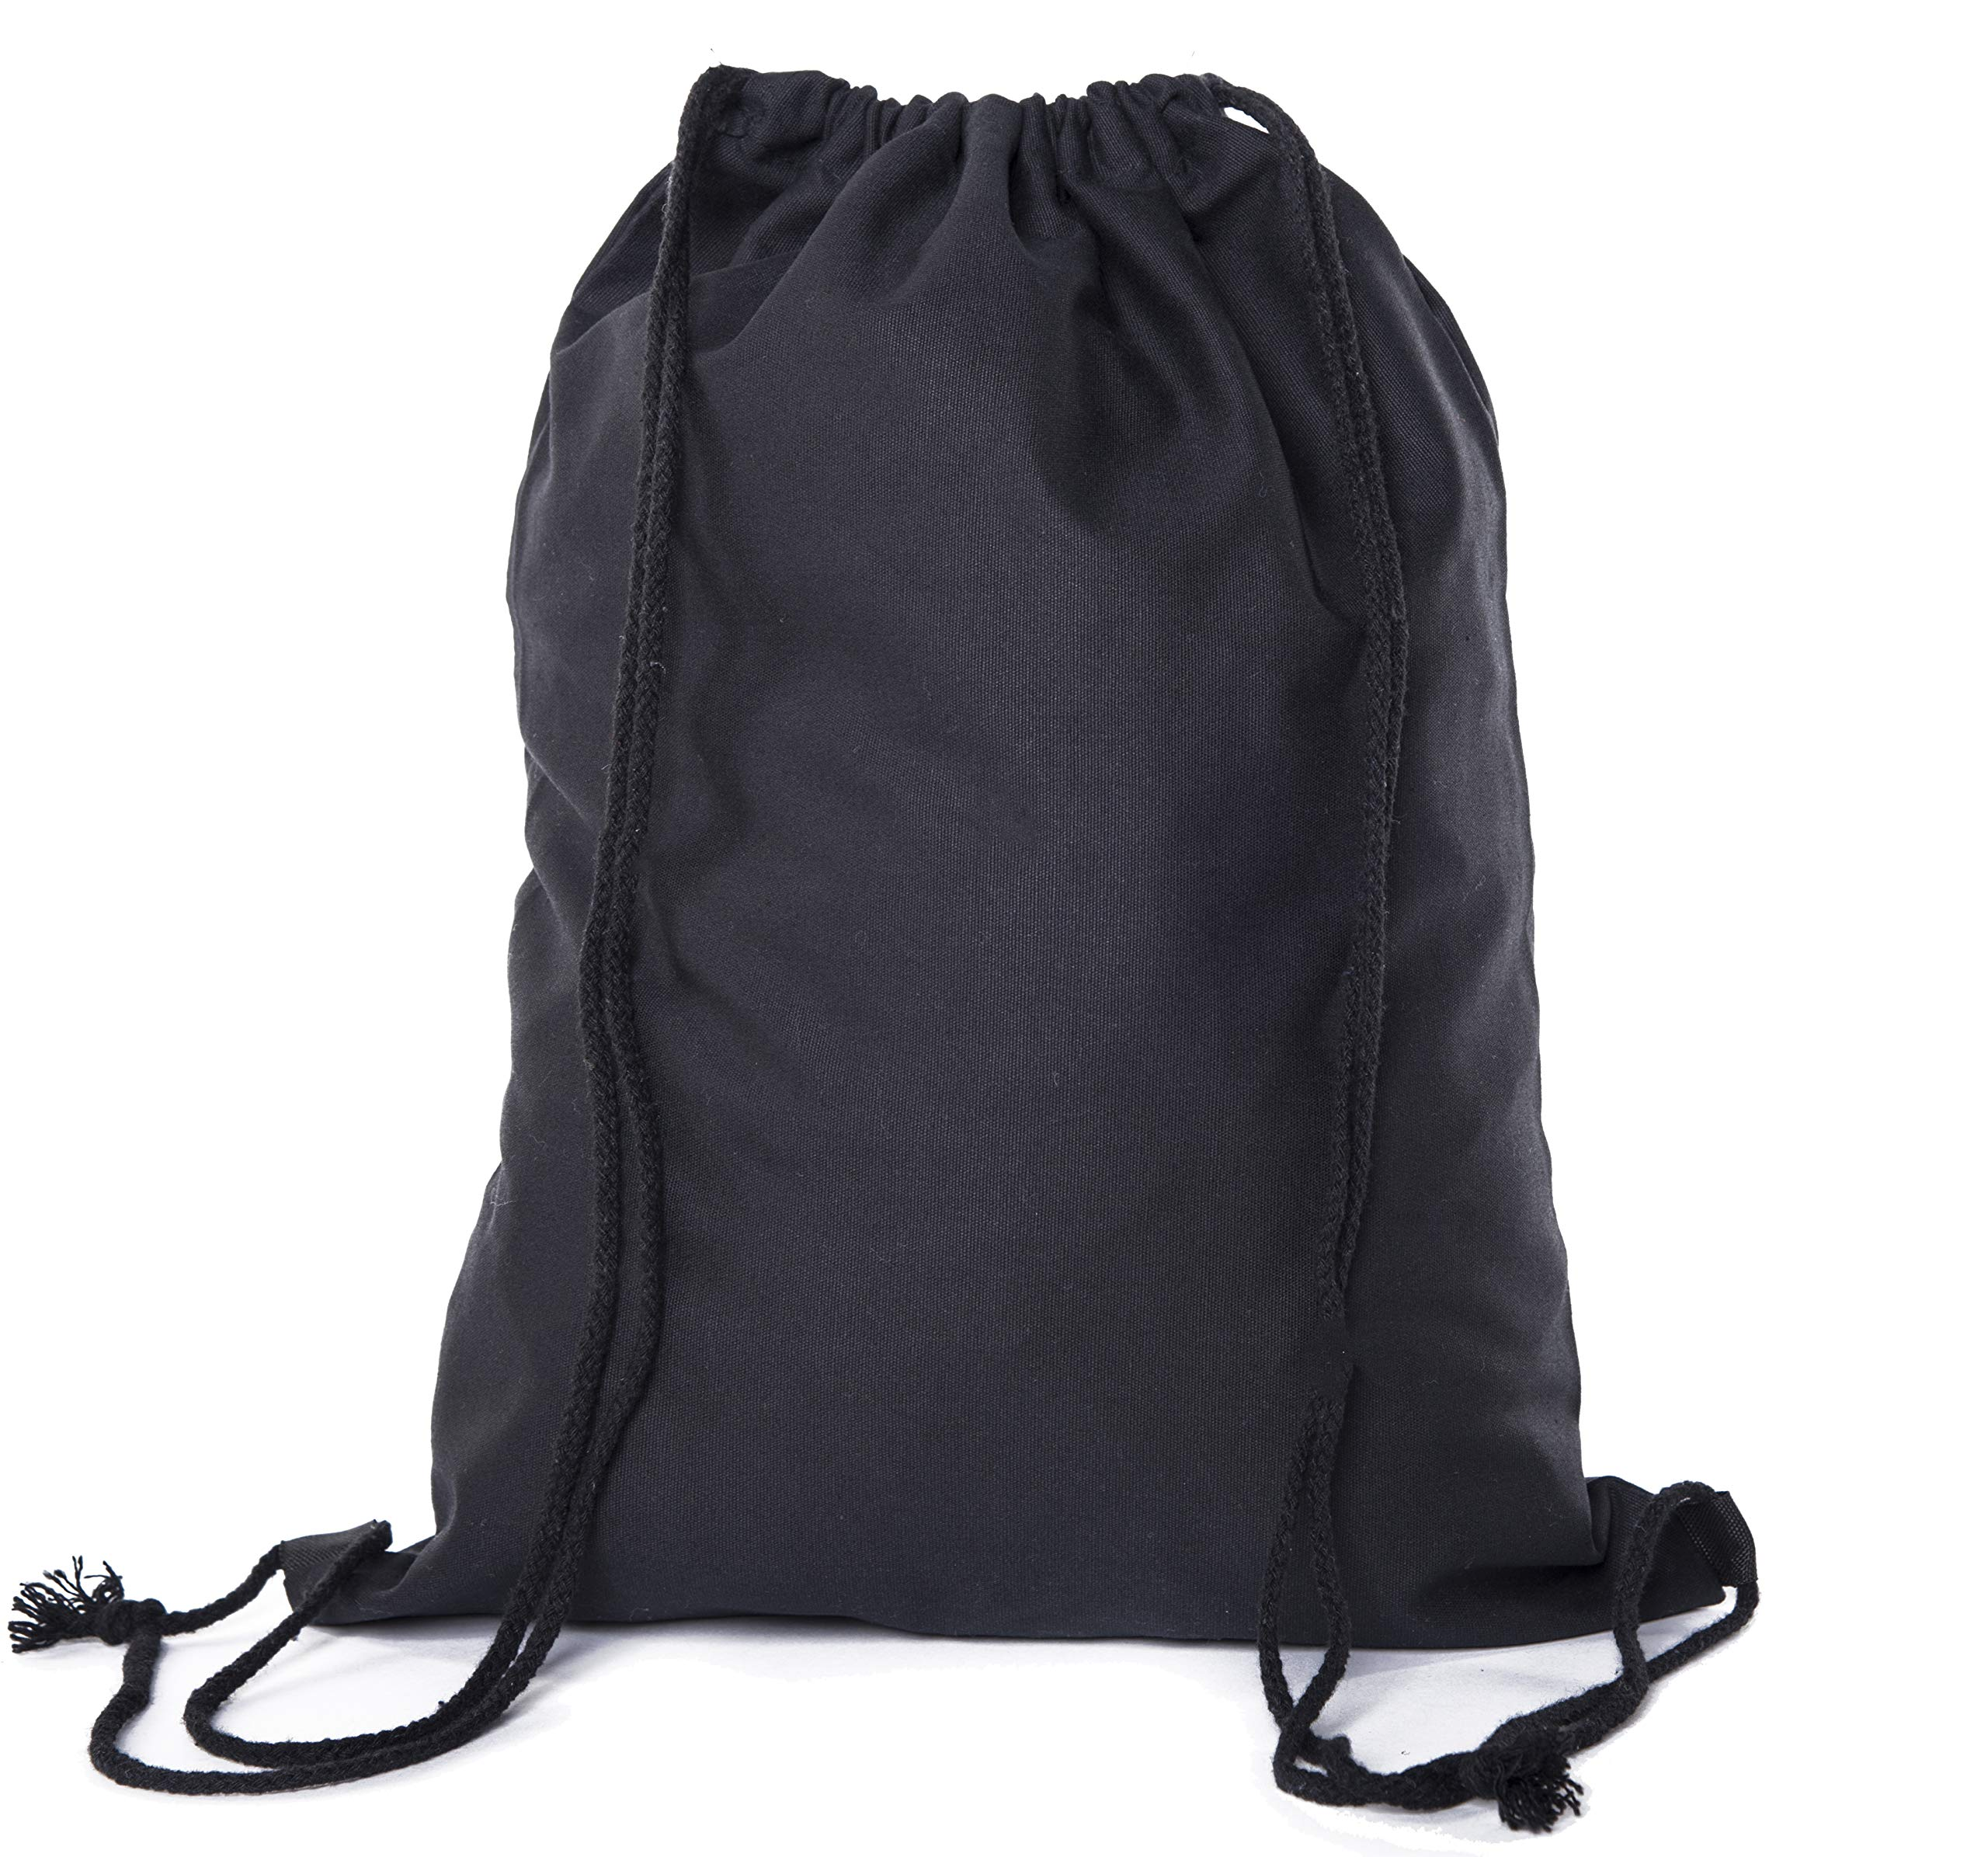 Cotton Drawstring Bags, Promotional Pull String Backpacks, Bulk Cinch Backpacks